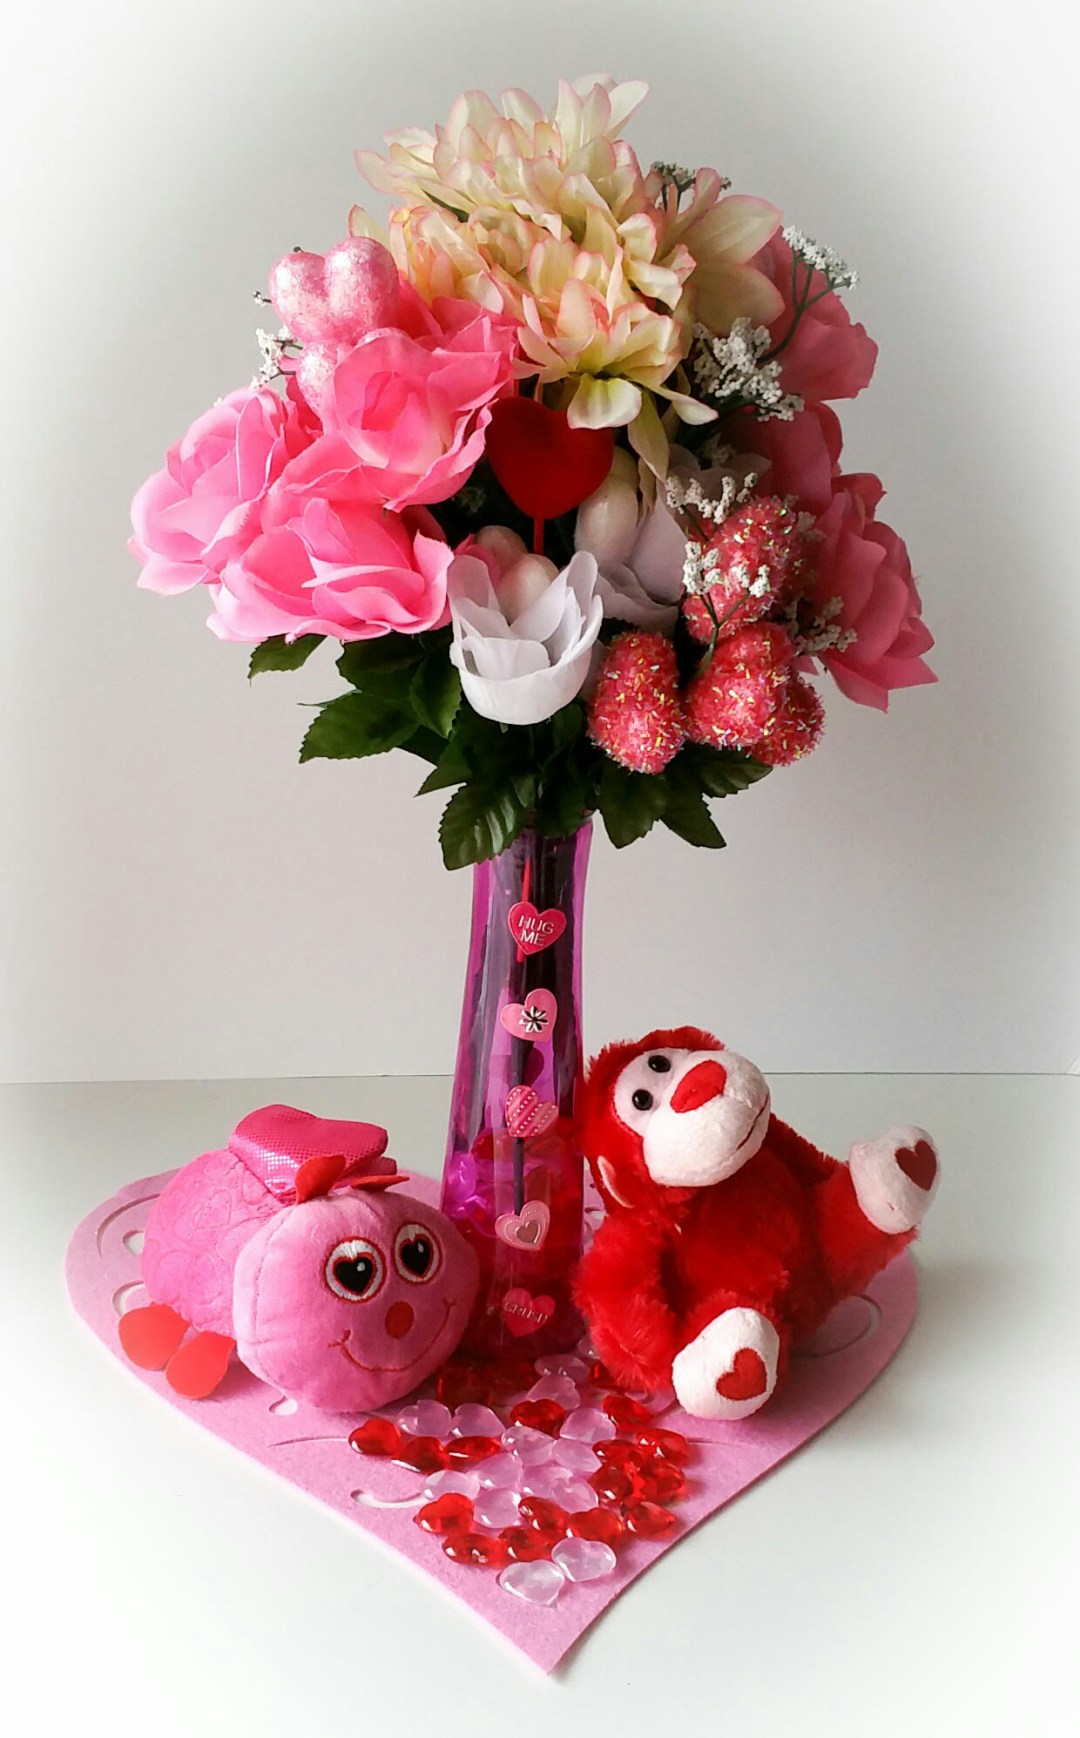 Super-Cute-DIY-Heart-Vase-Bouquet-twenty-LiWBF